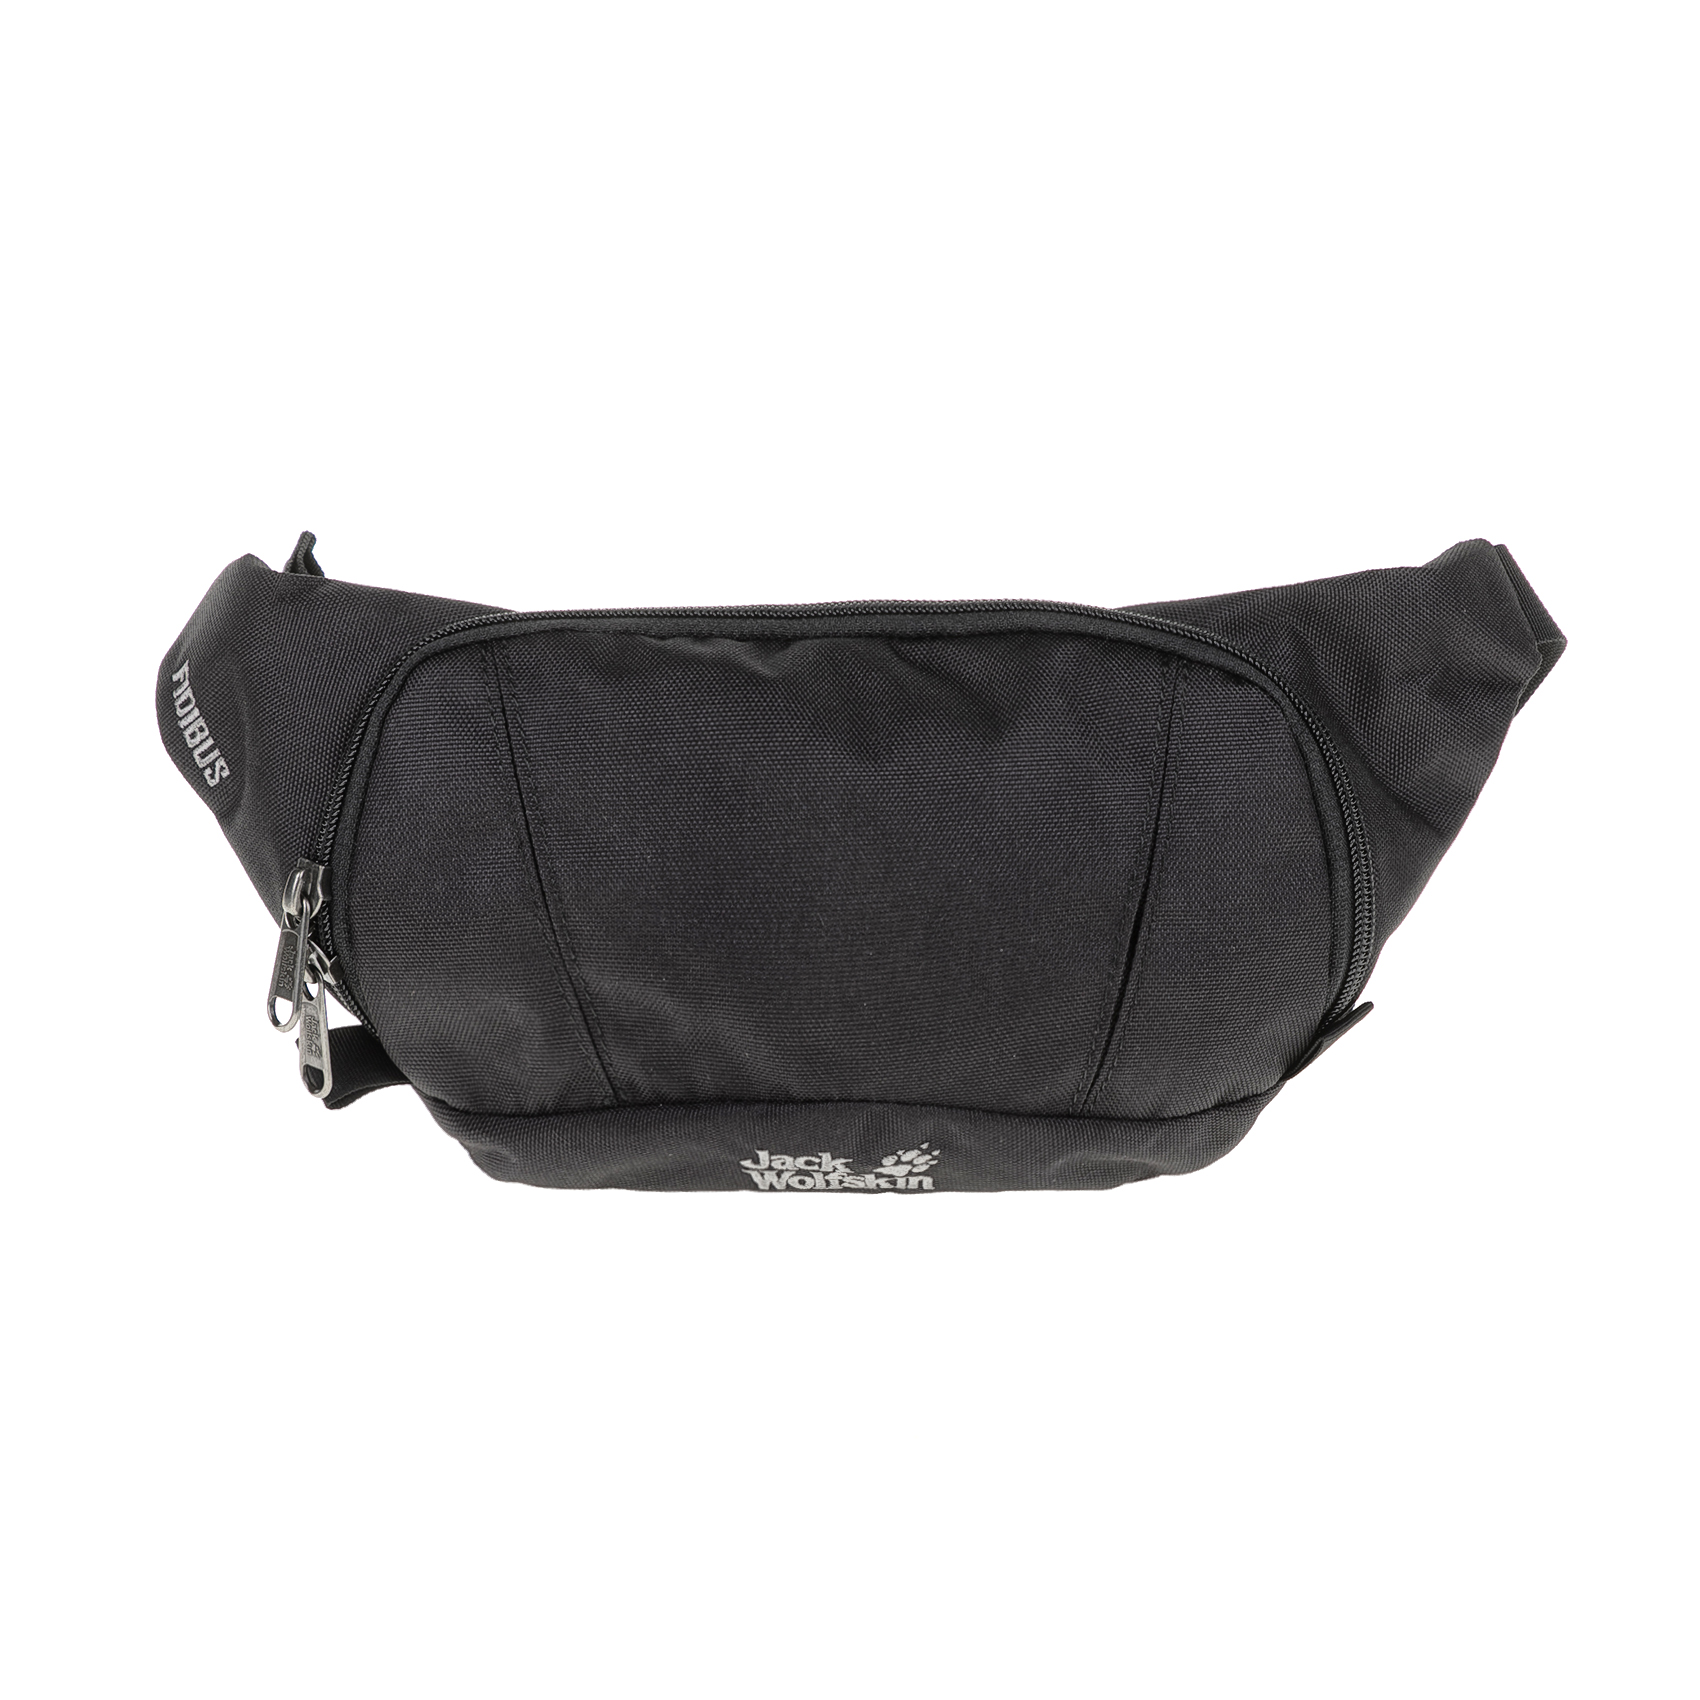 JACK WOLFSKIN – Τσαντάκι μέσης FIDIBUS FANNY PACK EQUIPMENT JACK WOLFSKIN μαύρο 1635957.0-1100